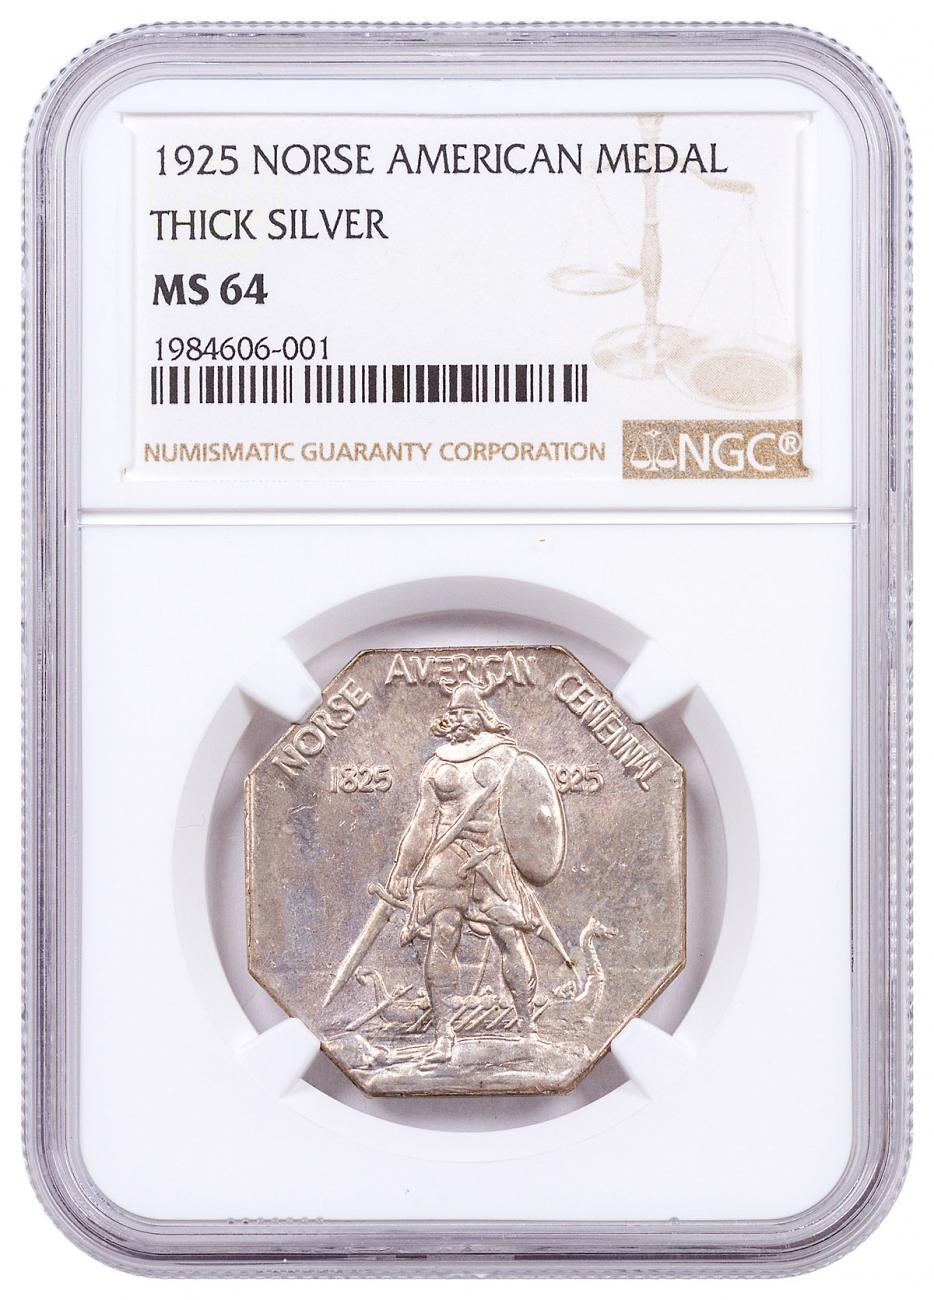 1925 United States Norse American Medal Thick Silver Medal NGC MS64 Brown Label